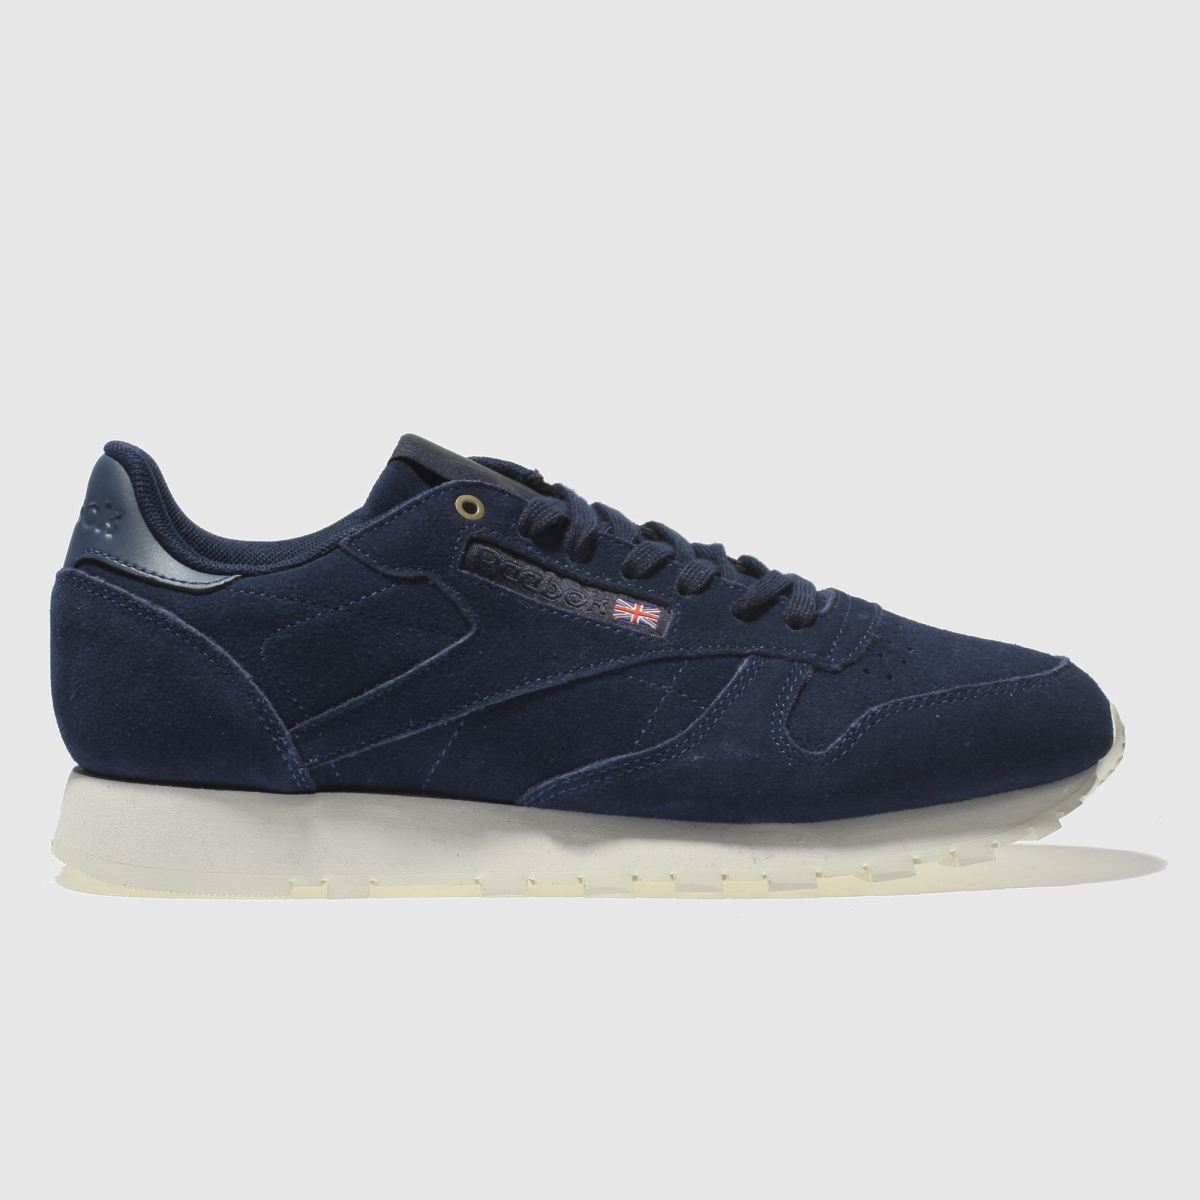 Reebok Navy Classic Leather Mcc Trainers